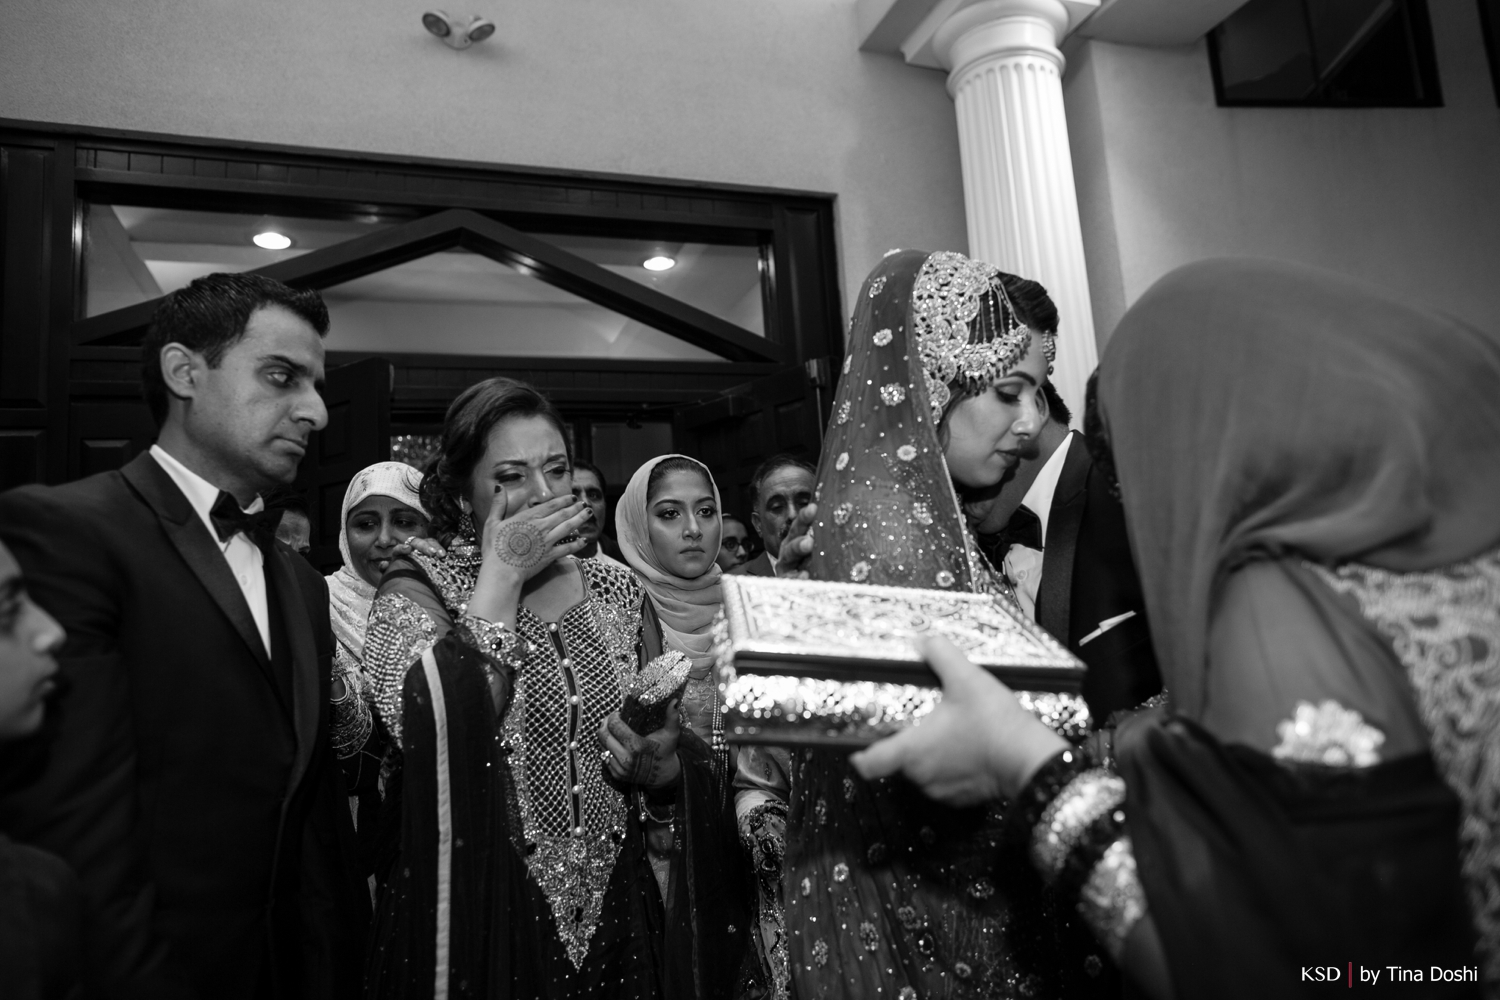 nj_south_asian_wedding_0144